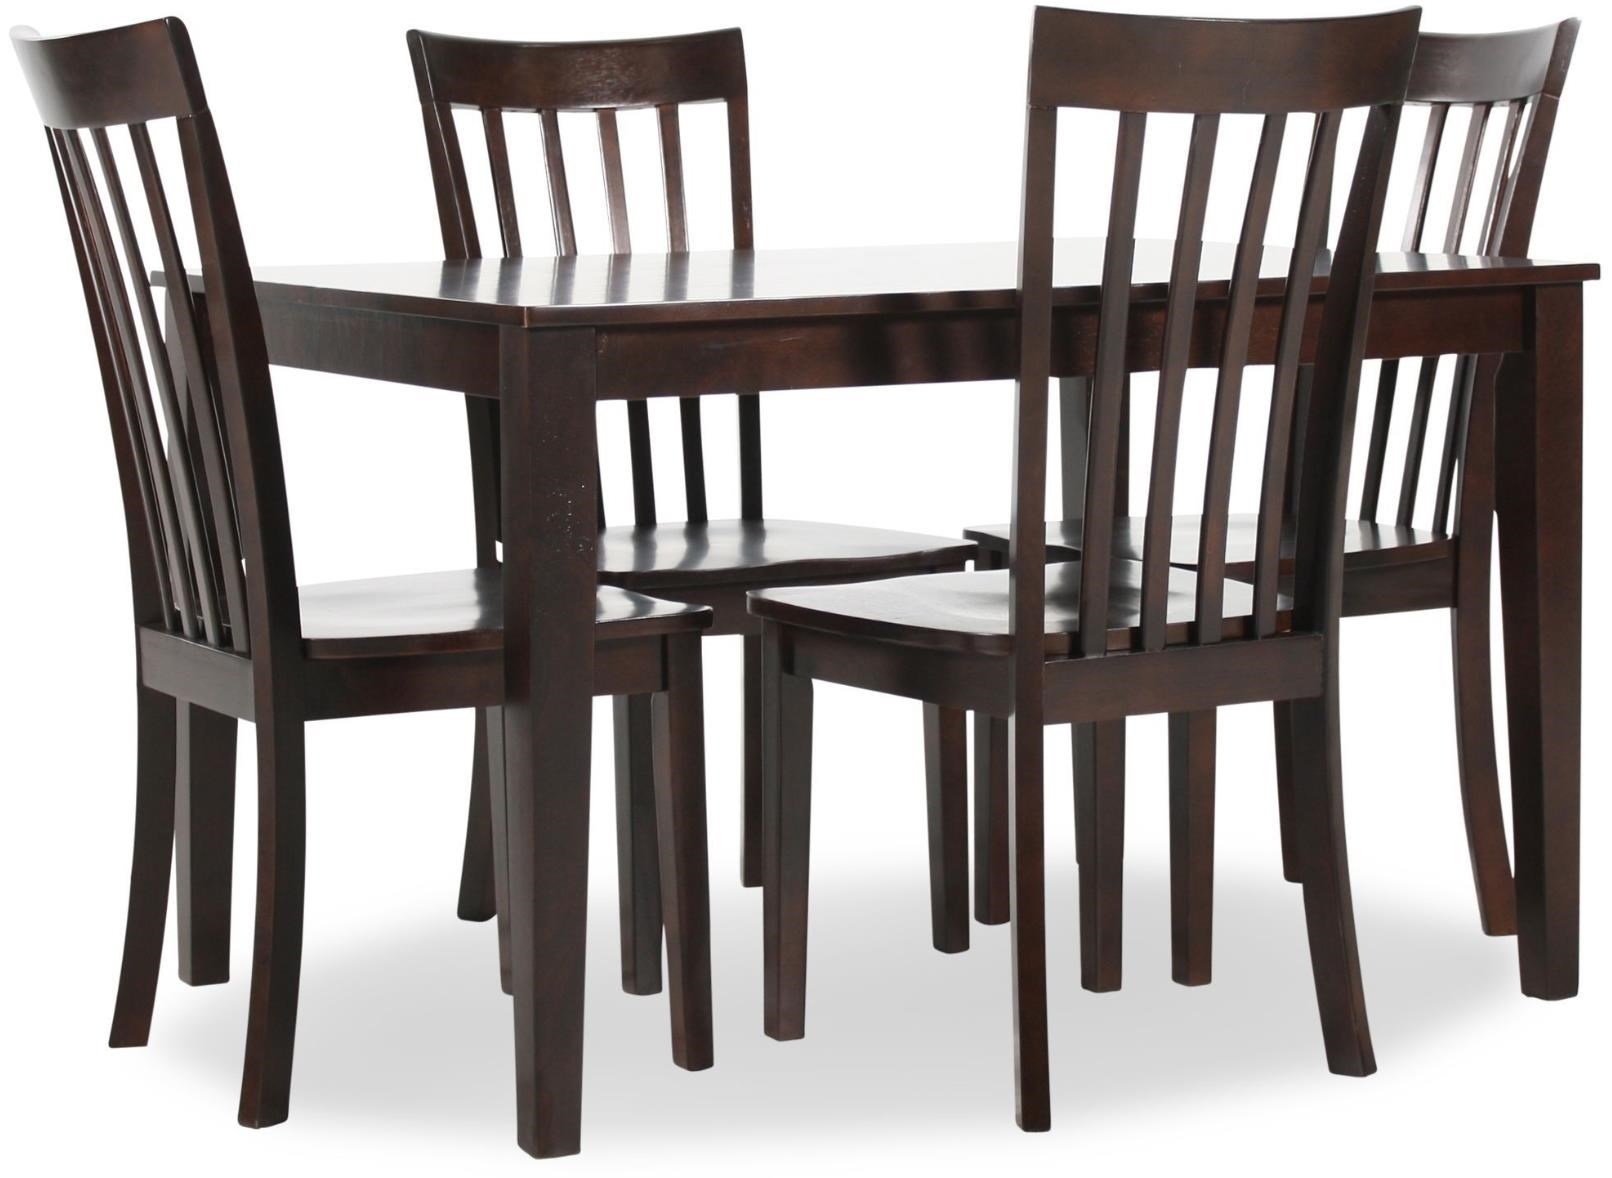 Hilton 5 Piece Dining Set With Rectangular Table And 4 Chairs Ruby Gordon Home Dining 5 Piece Sets